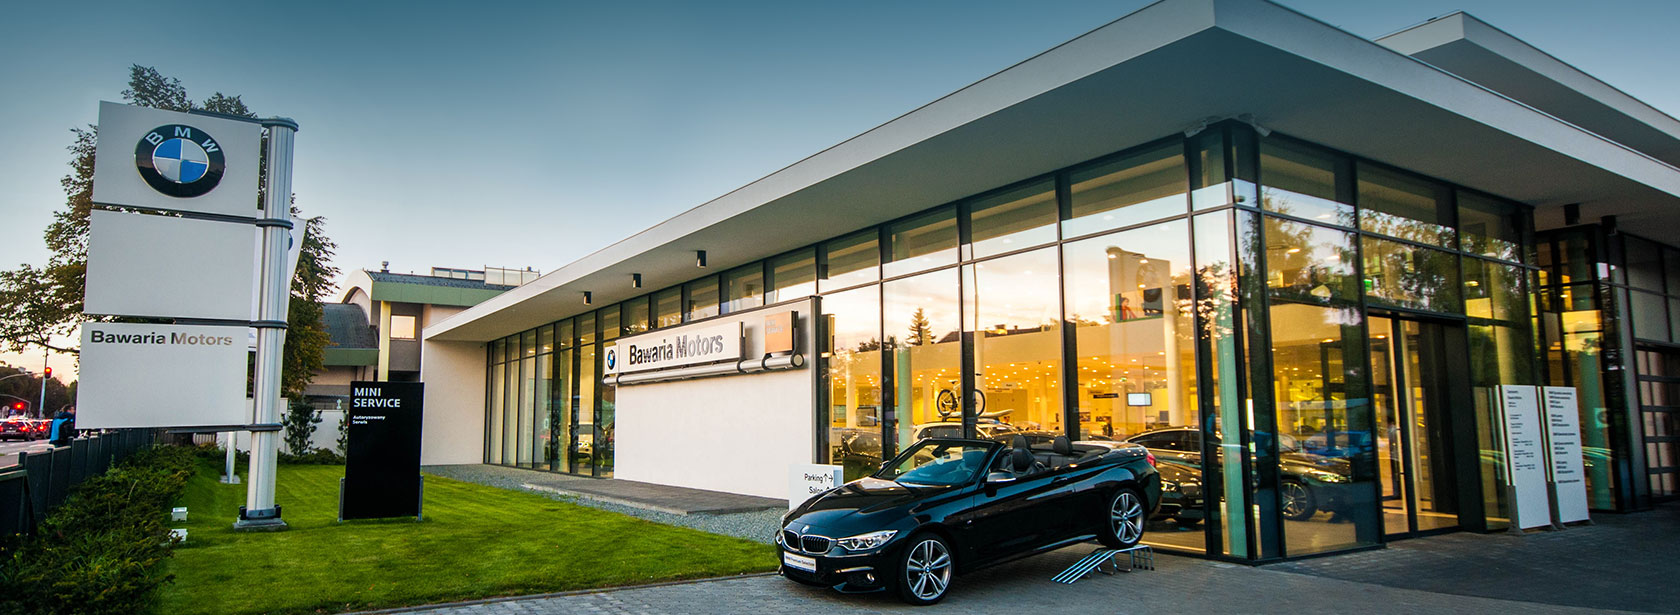 Salon Dealer BMW Bawaria Motors Gdańsk.